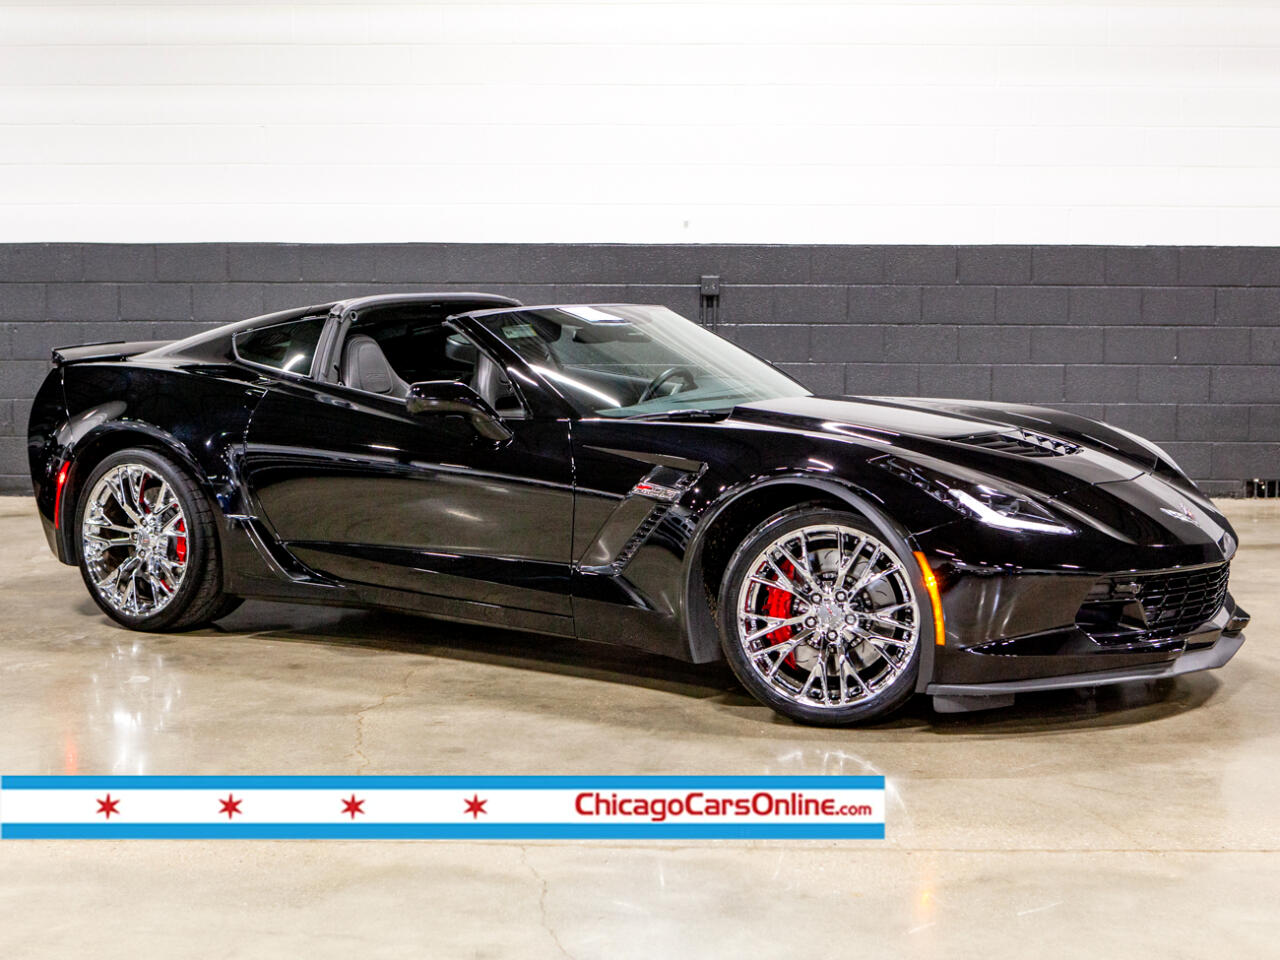 2016 Chevrolet Corvette Stingray 2LZ Z06 Coupe